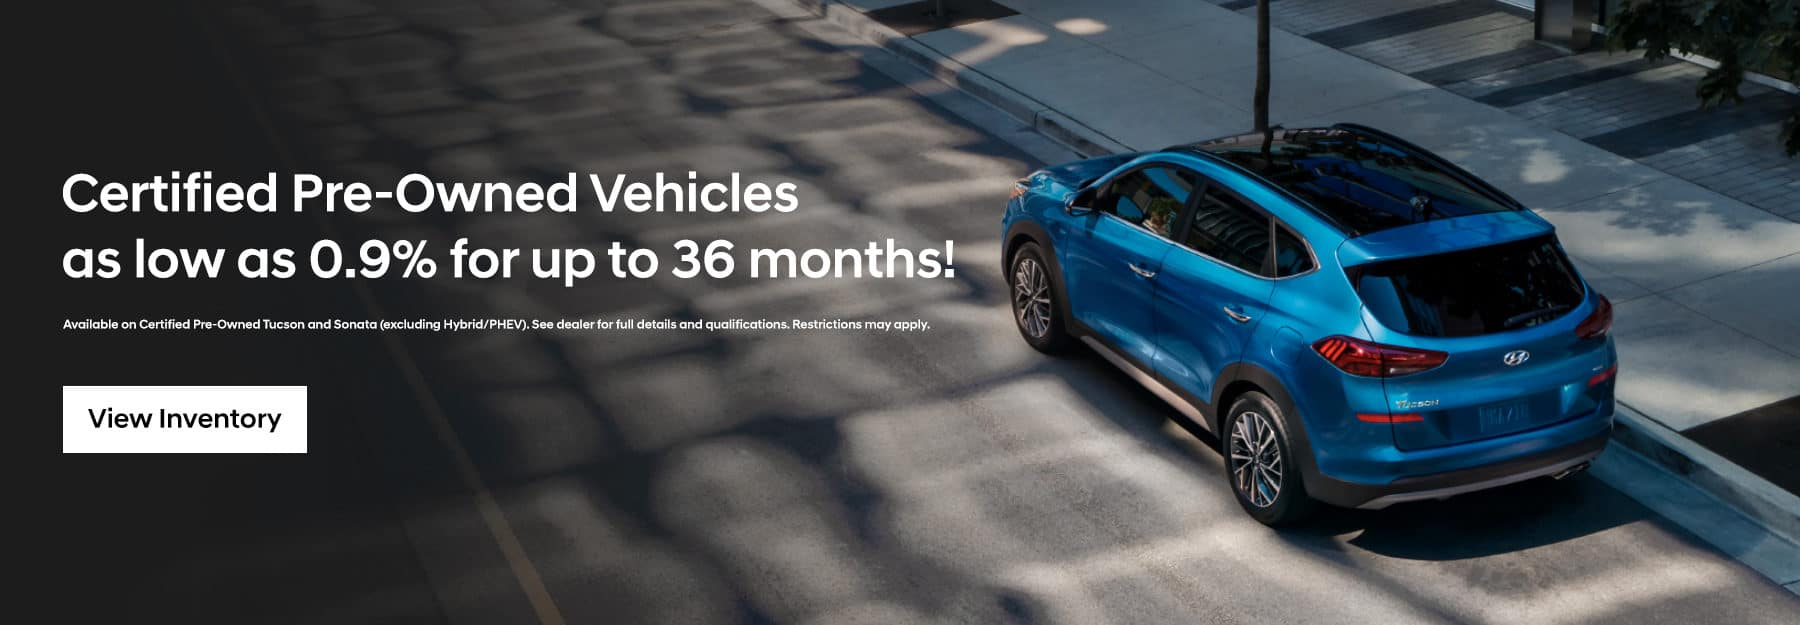 Certified Pre-Owned Vehicles as low as 0.9% for up to 36 months!